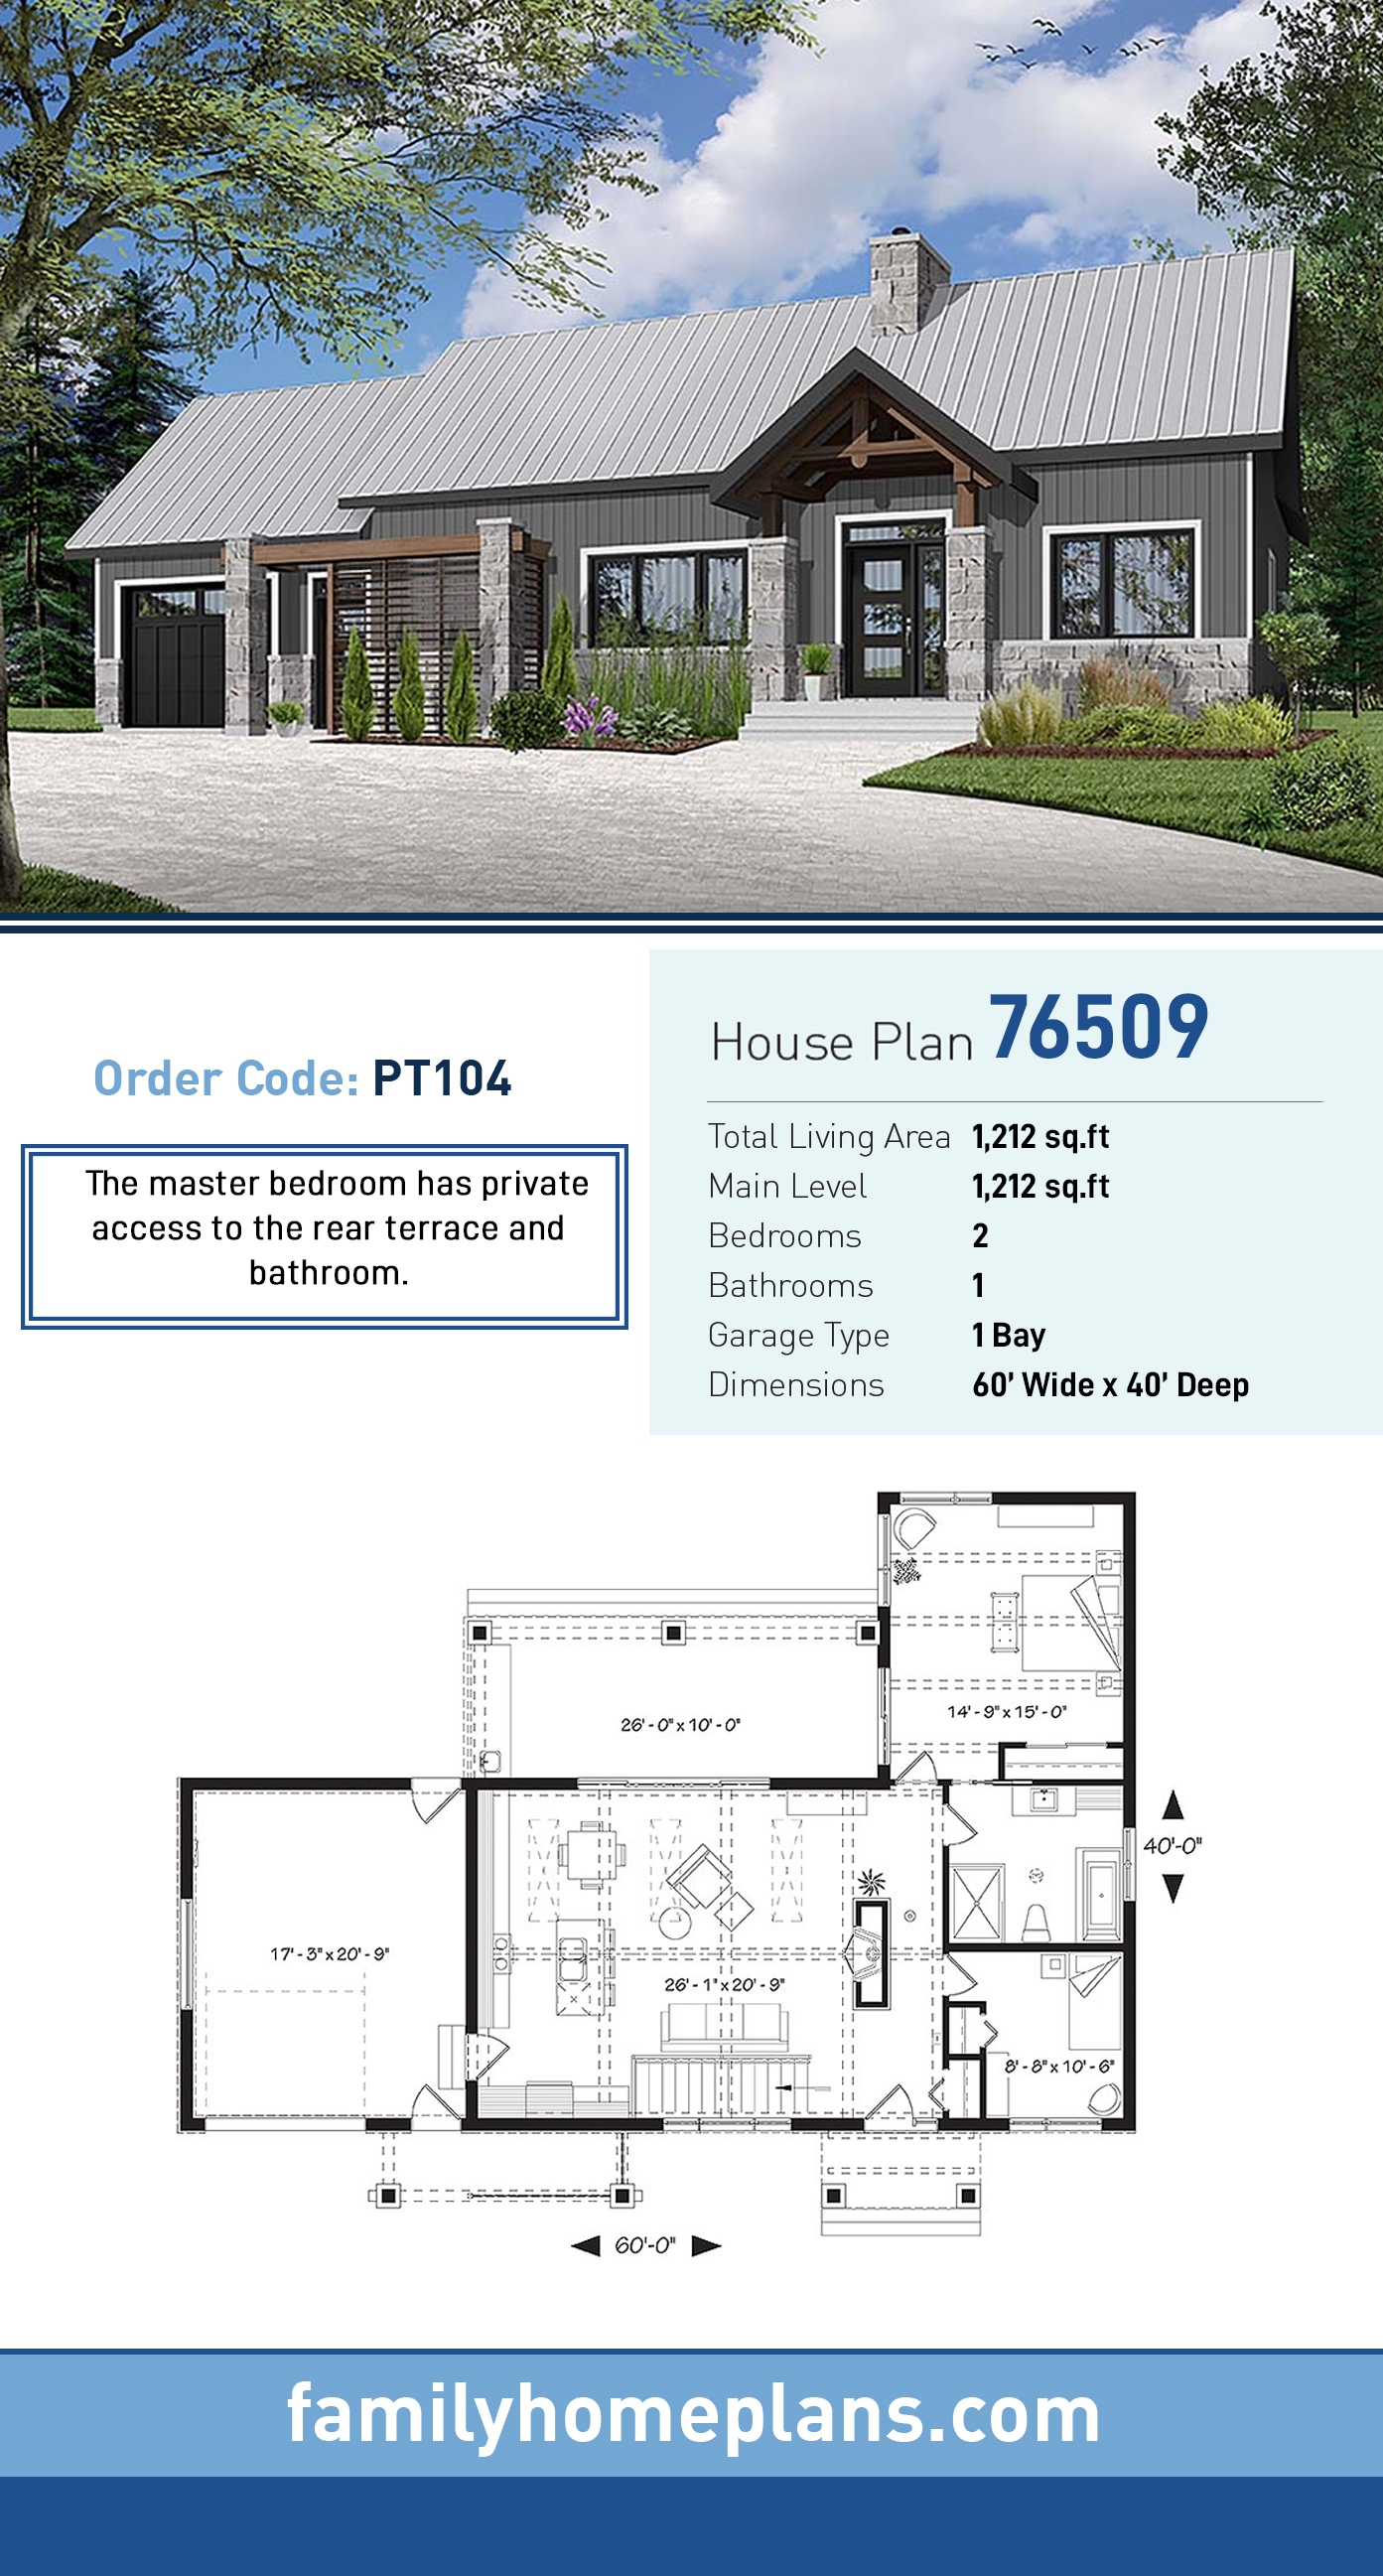 Cape Cod, Cottage, Country, Craftsman, Farmhouse House Plan 76509 with 2 Beds, 1 Baths, 1 Car Garage